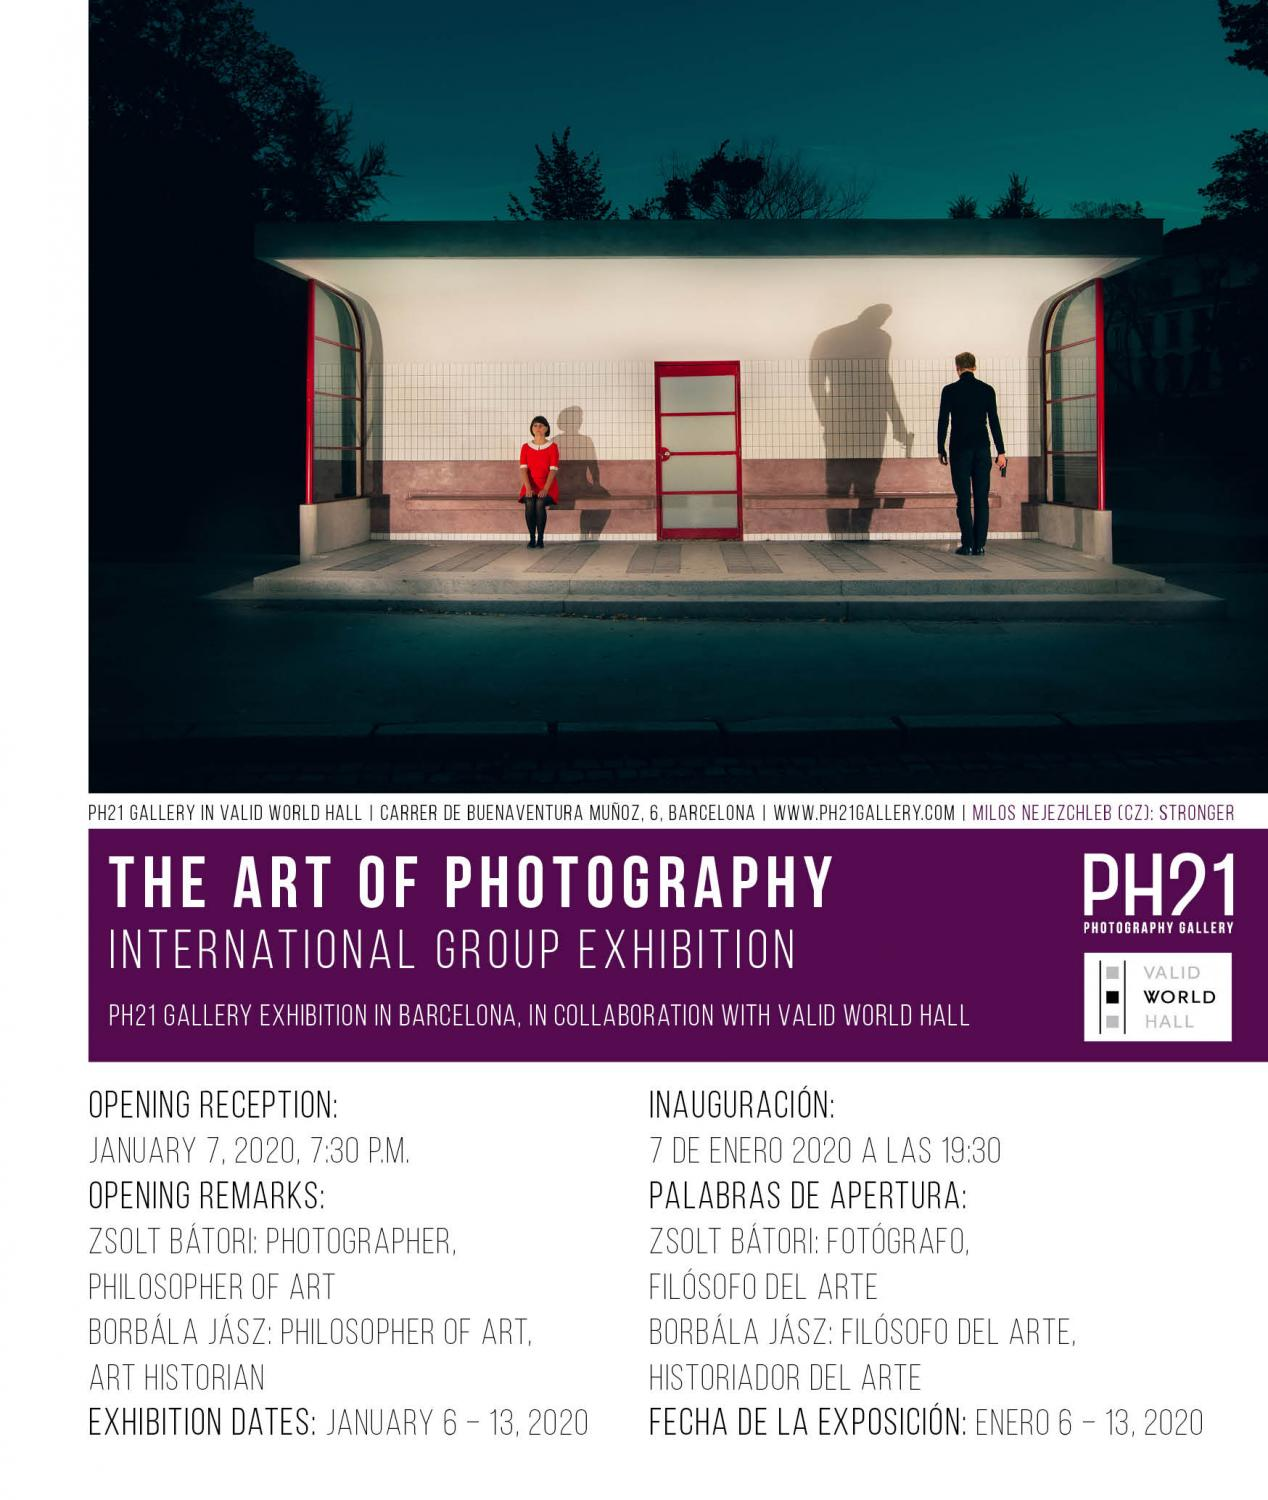 Art and Documentary Photography - Loading 06_01_20_The_art_of_photography.jpg